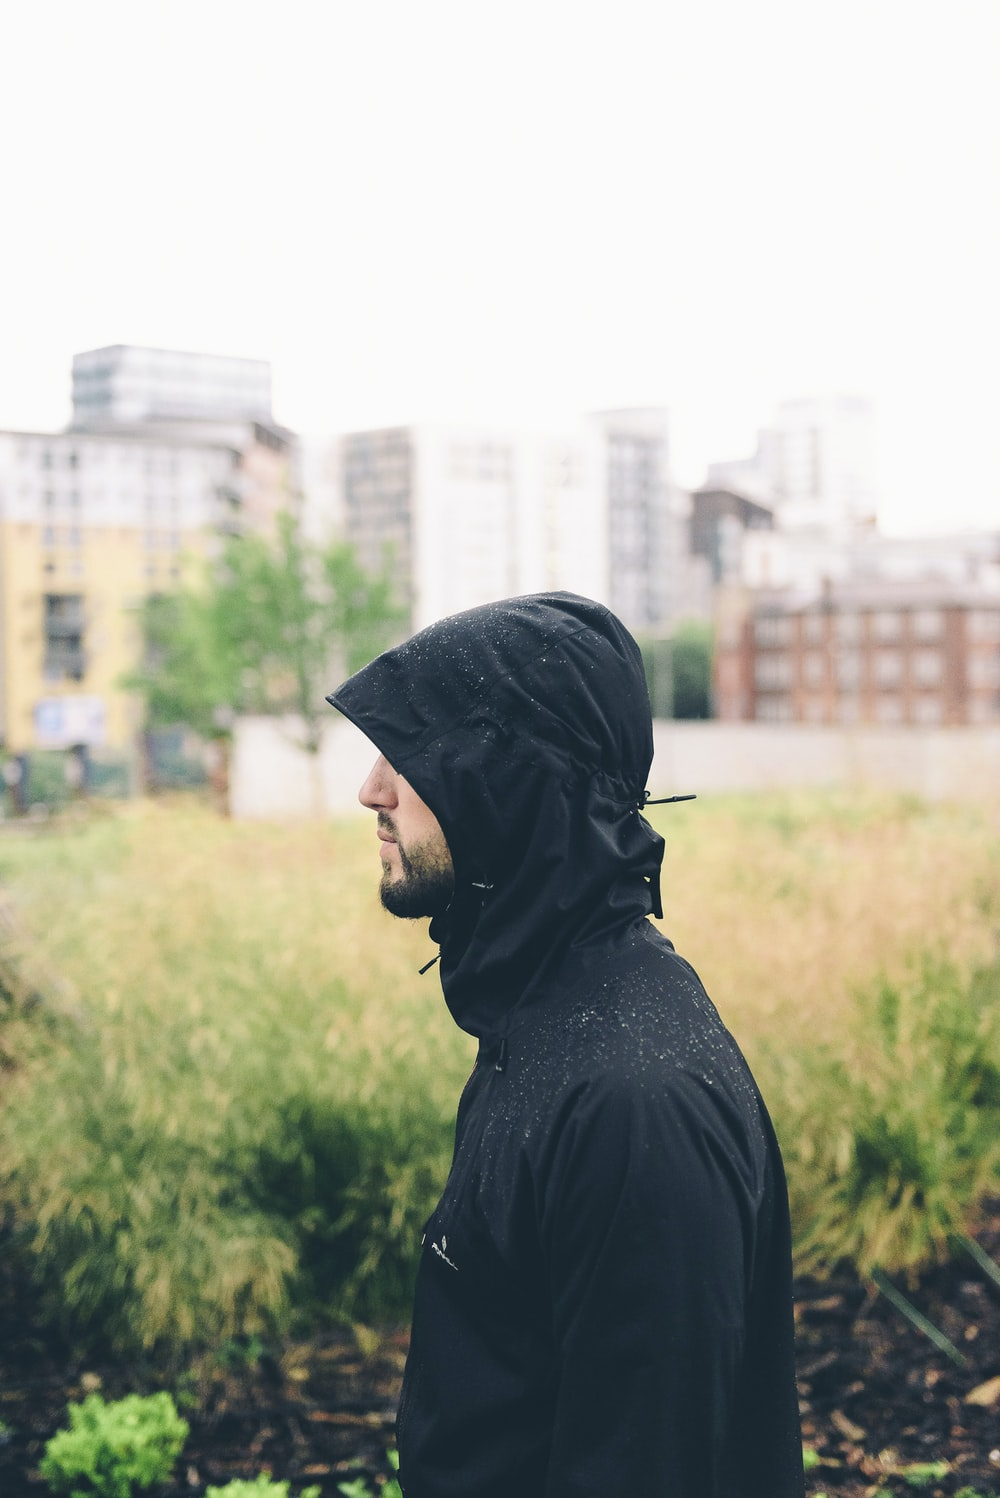 man wearing hoodie standing near grass with building background during daytime